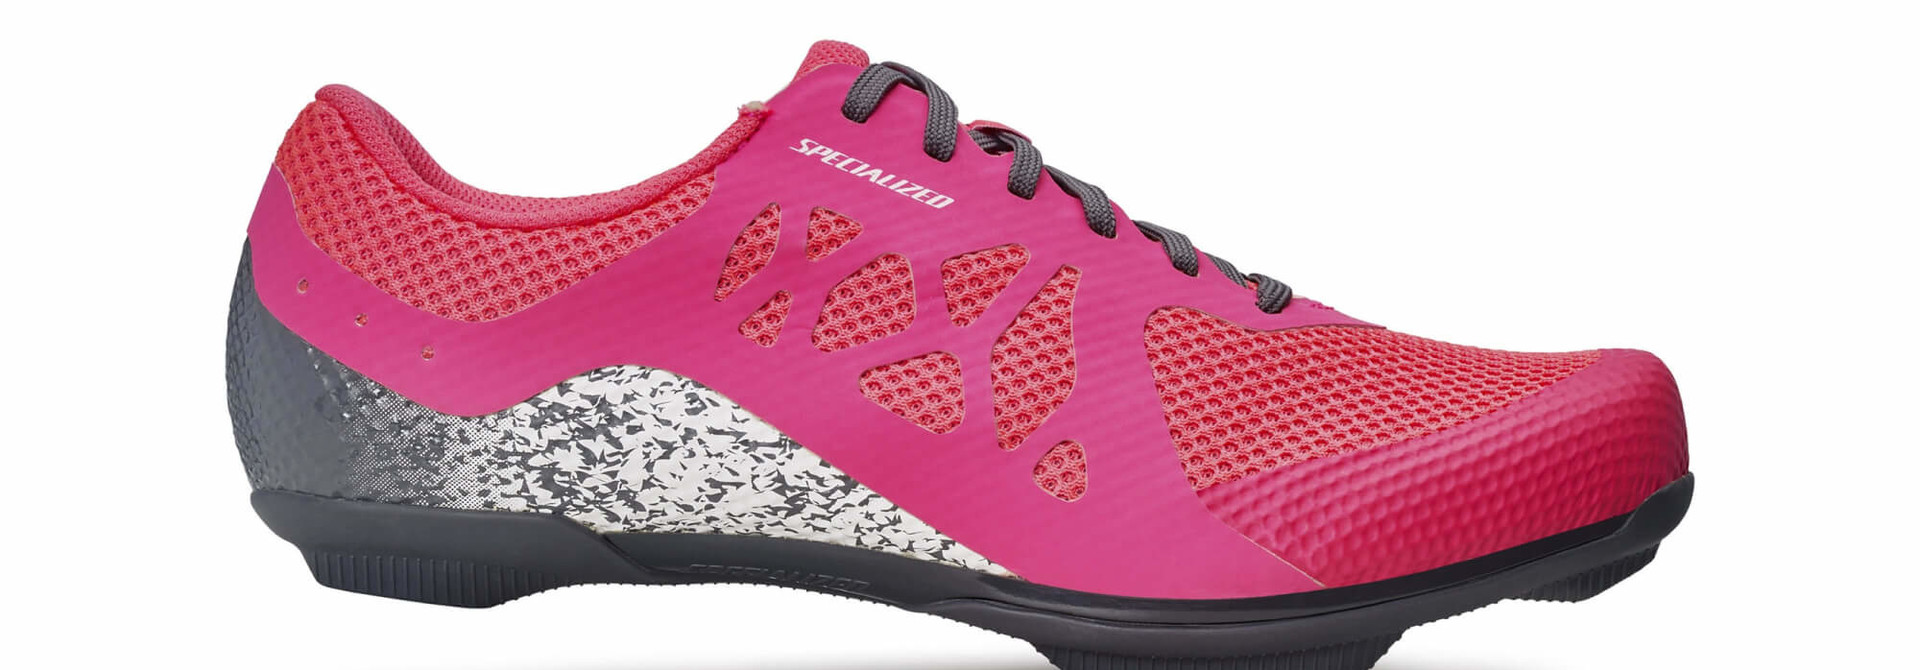 Remix Rd Shoe Wmn Epnk/Clgry 43 Size: 43